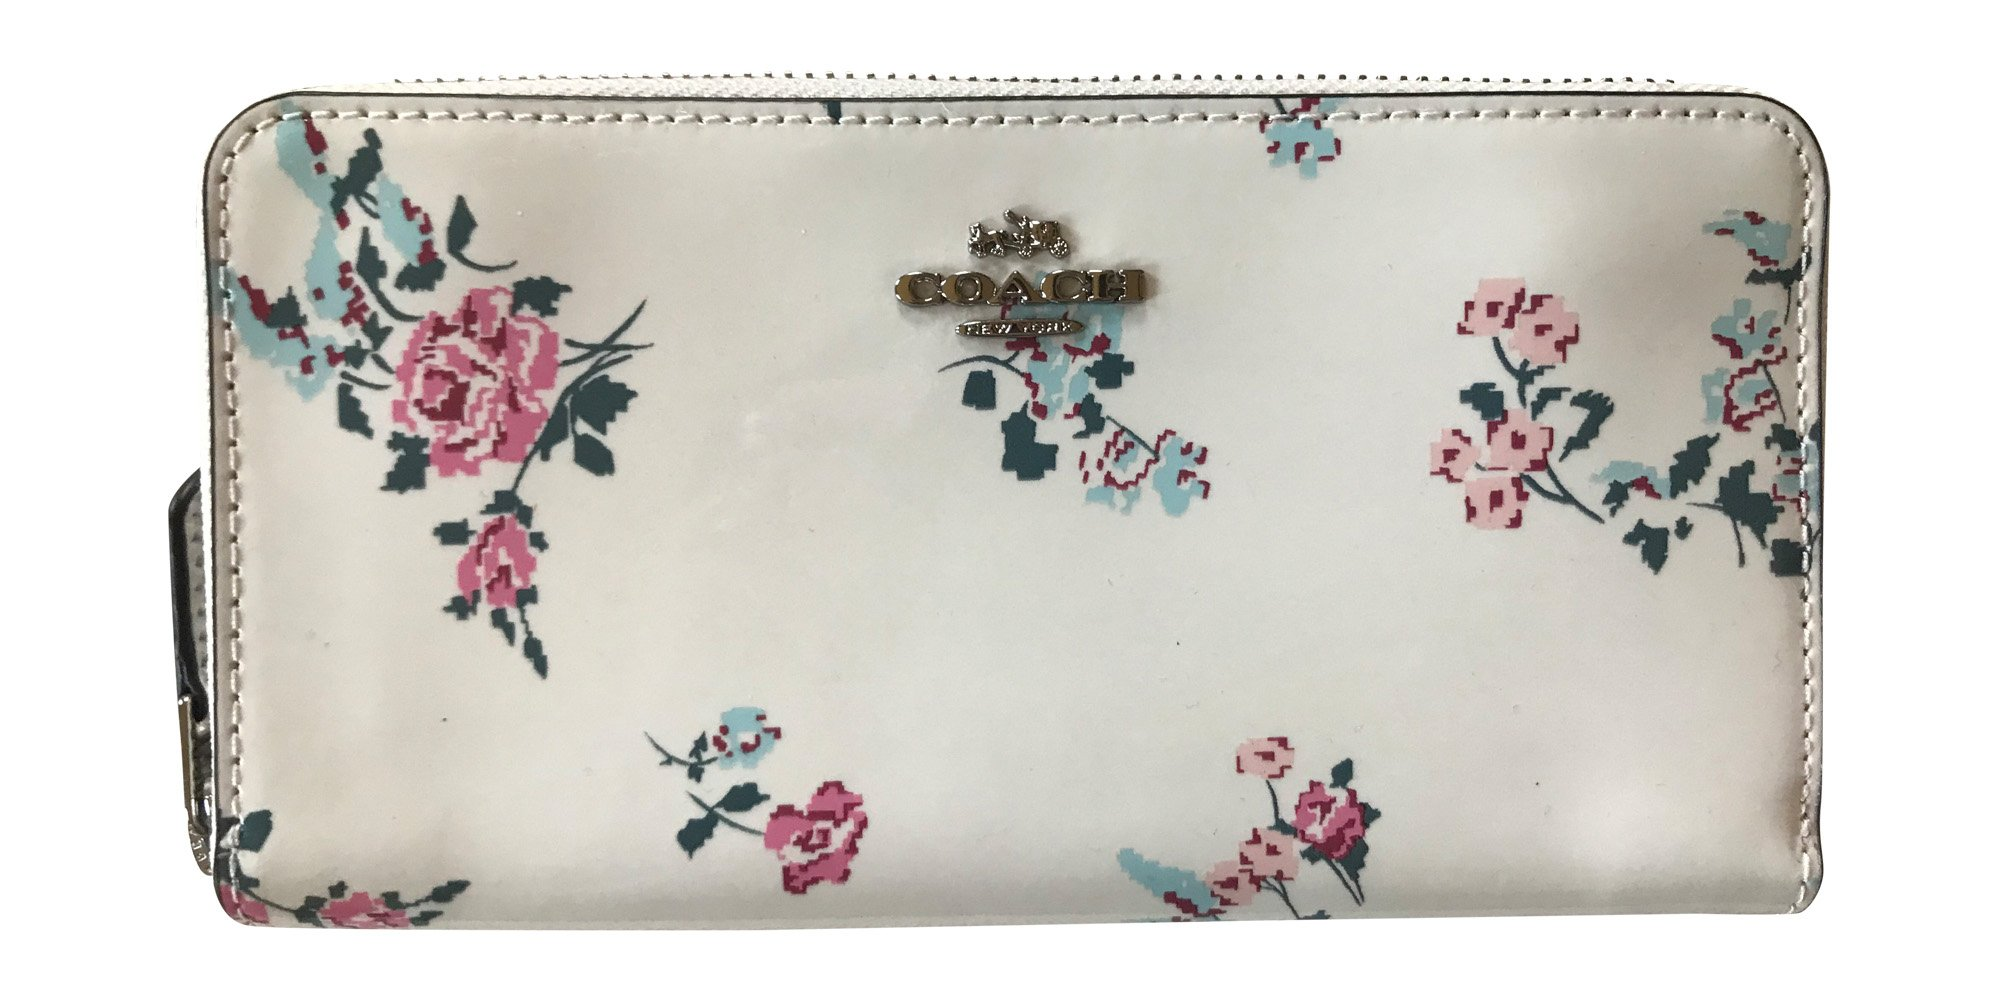 Coach Patent Leather With Cross-Stitch Floral Print Accordian Zip Wallet, chalk, Multi-Colored